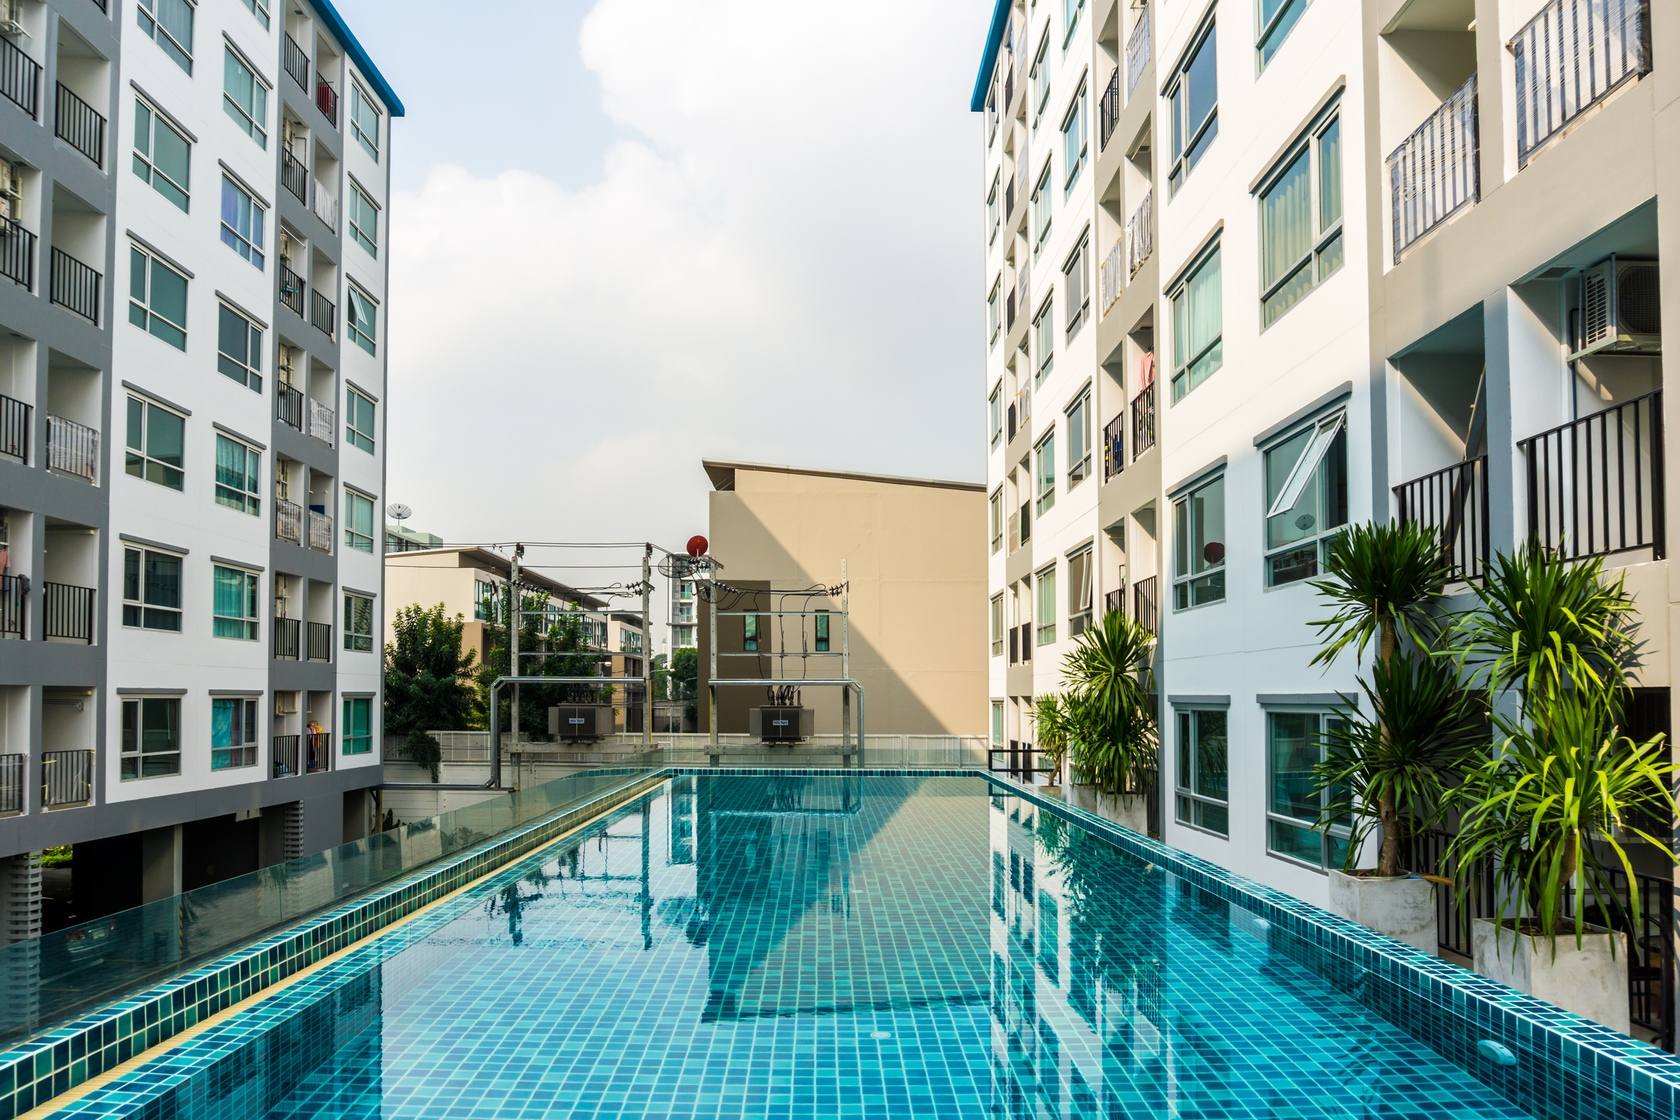 3 Things to Consider Before Buying a Condominium